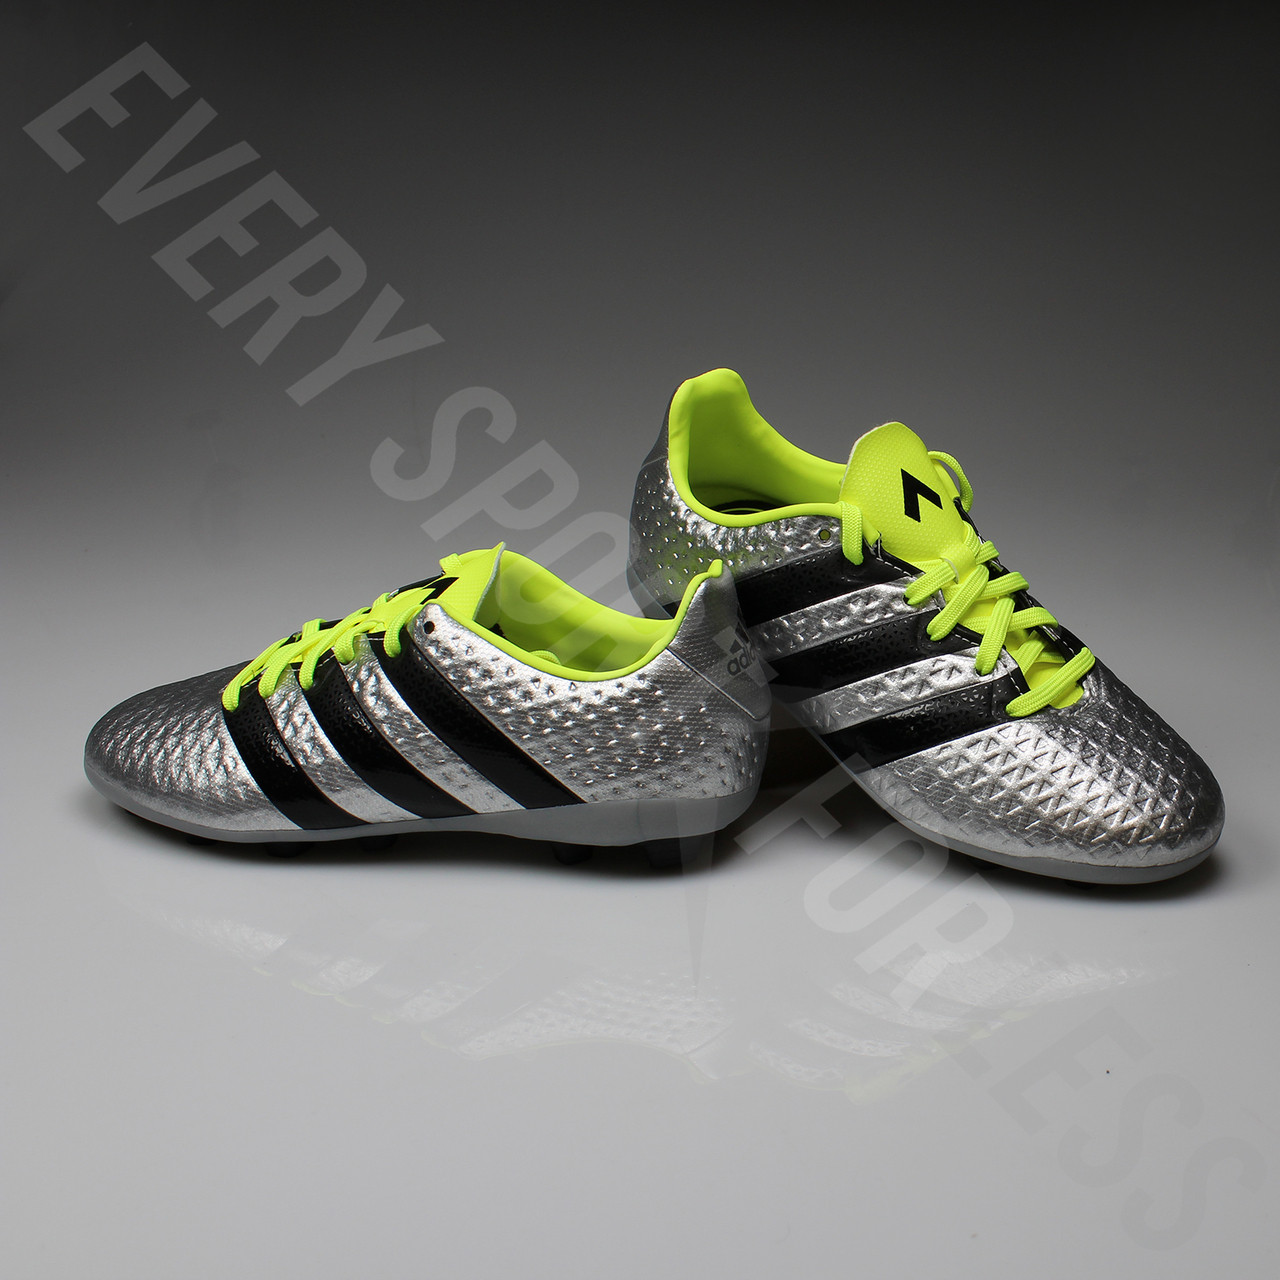 sports shoes 4c1c3 43631 Adidas Ace 16.4 FxG Junior Soccer Cleat S42142 - Silver, Black, Yellow